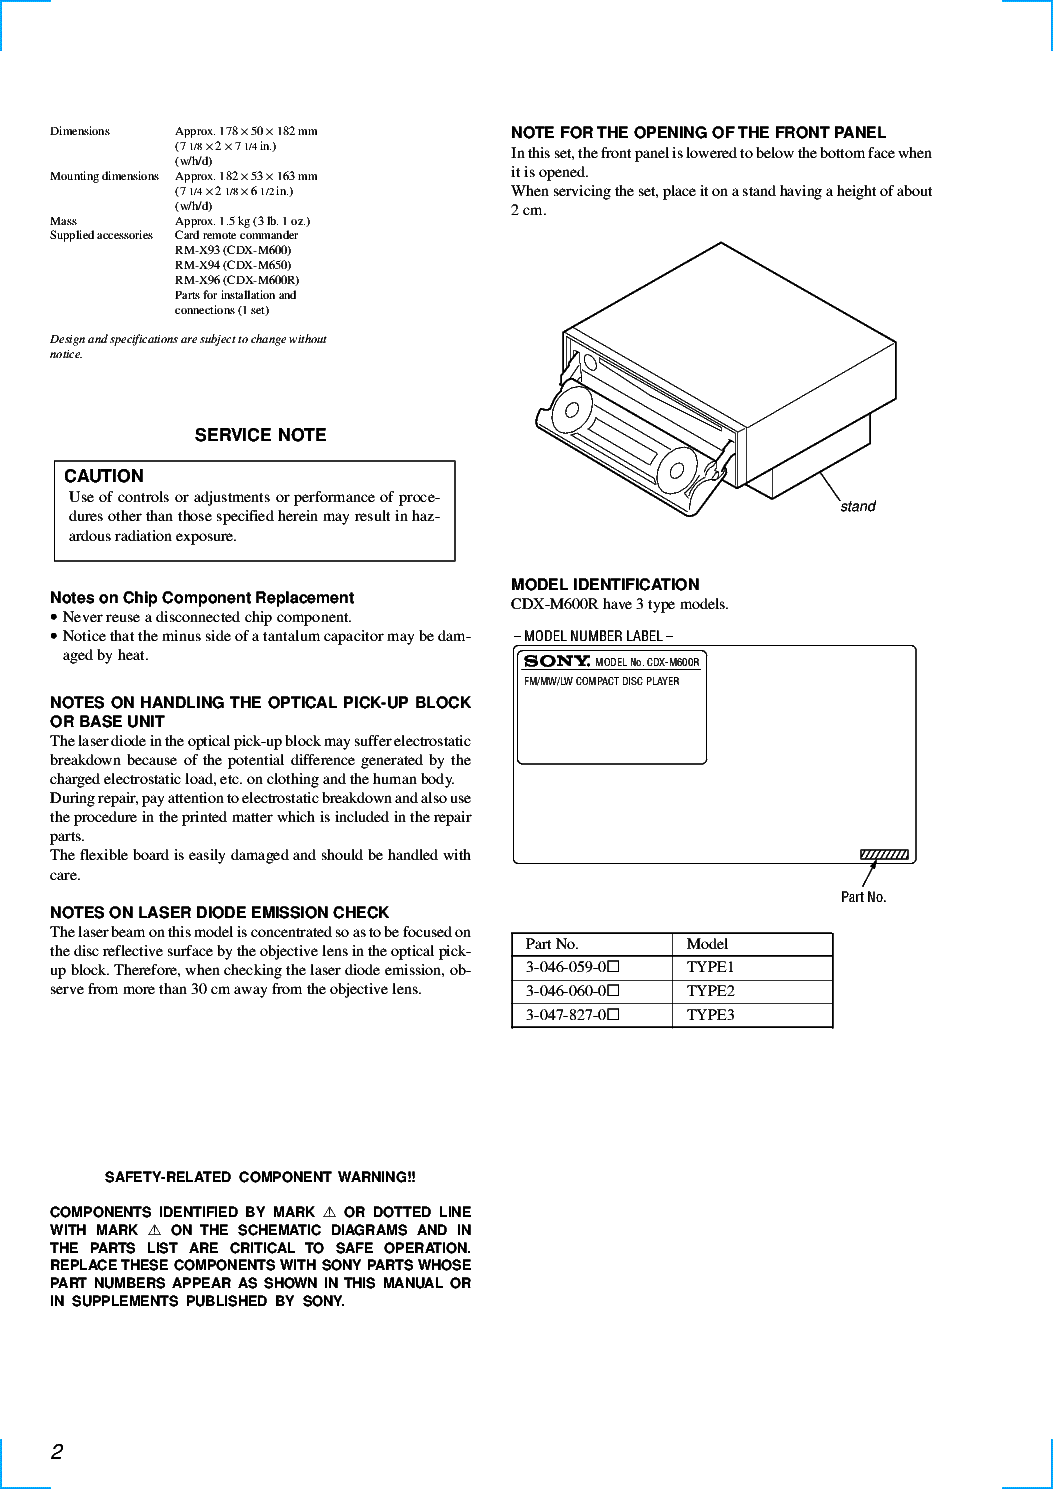 sony cdx-m600 cdx-m600r cdx-m650 service manual (2nd page)